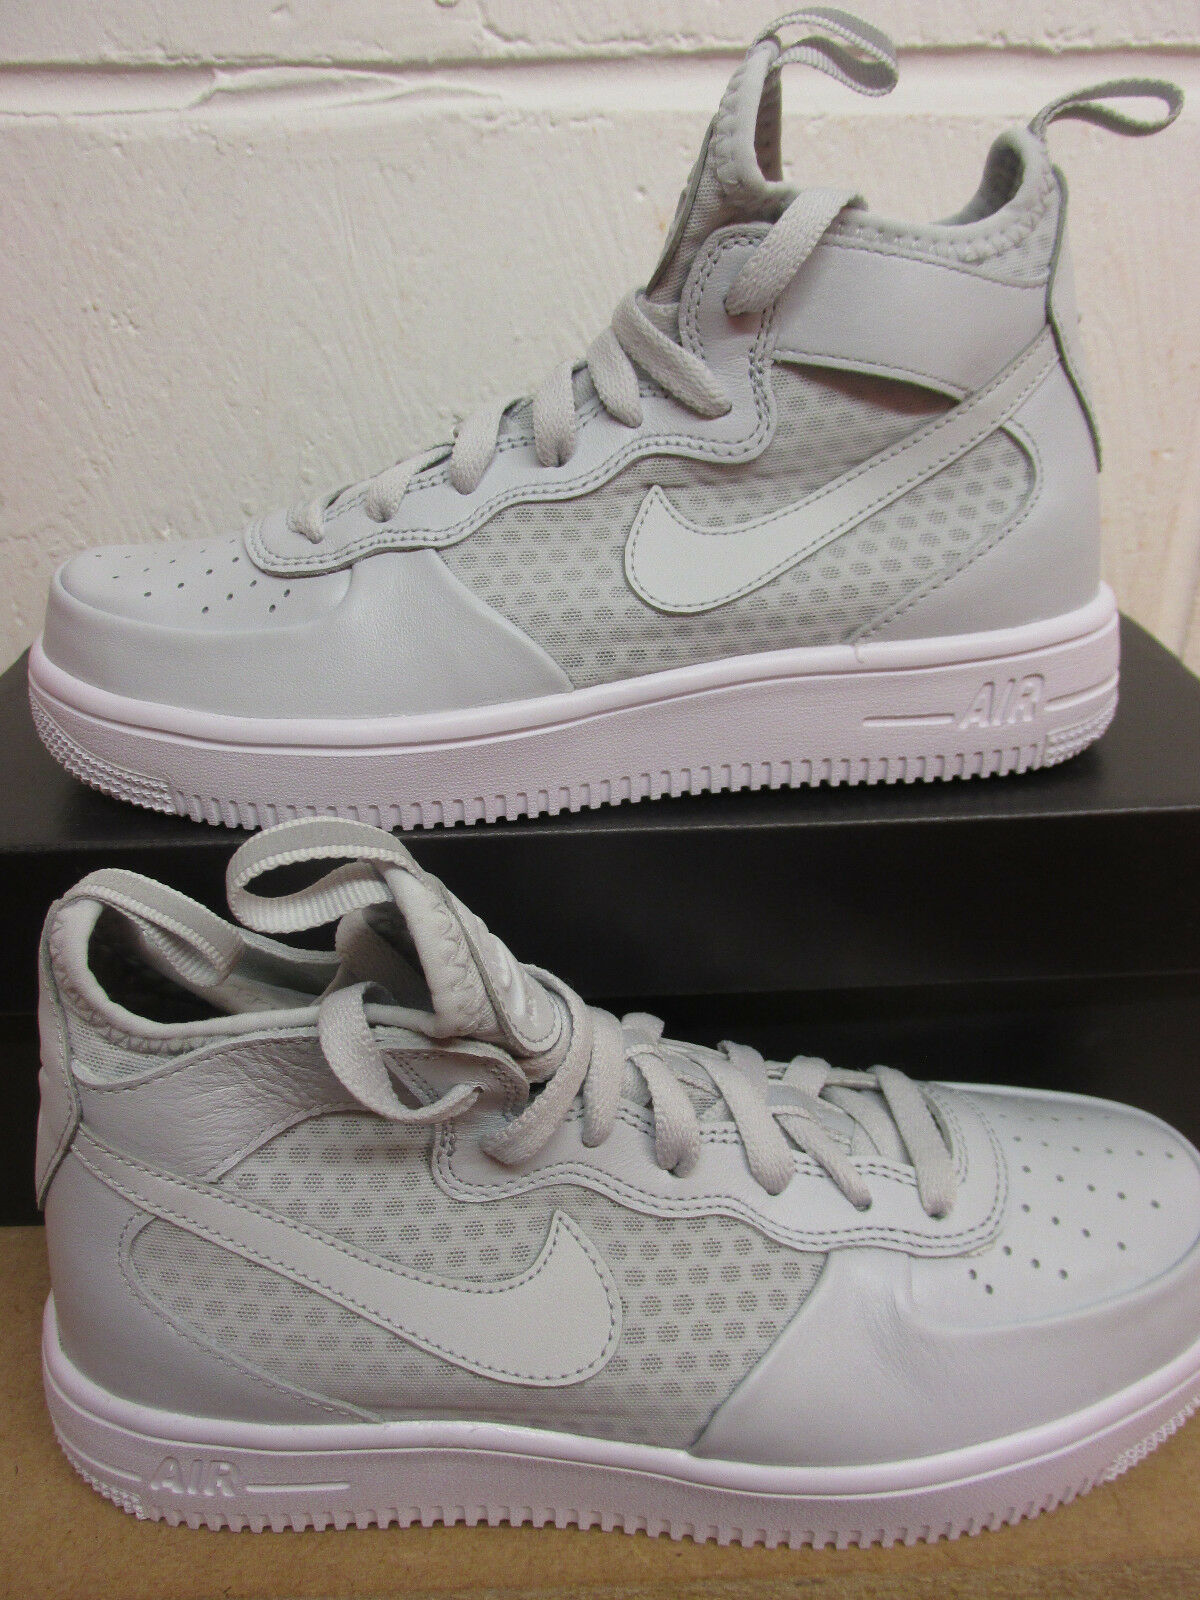 Nike Air Force 1 Ultraforce Mid GS Hi Top Trainers 869945 002 Sneakers Schuhes